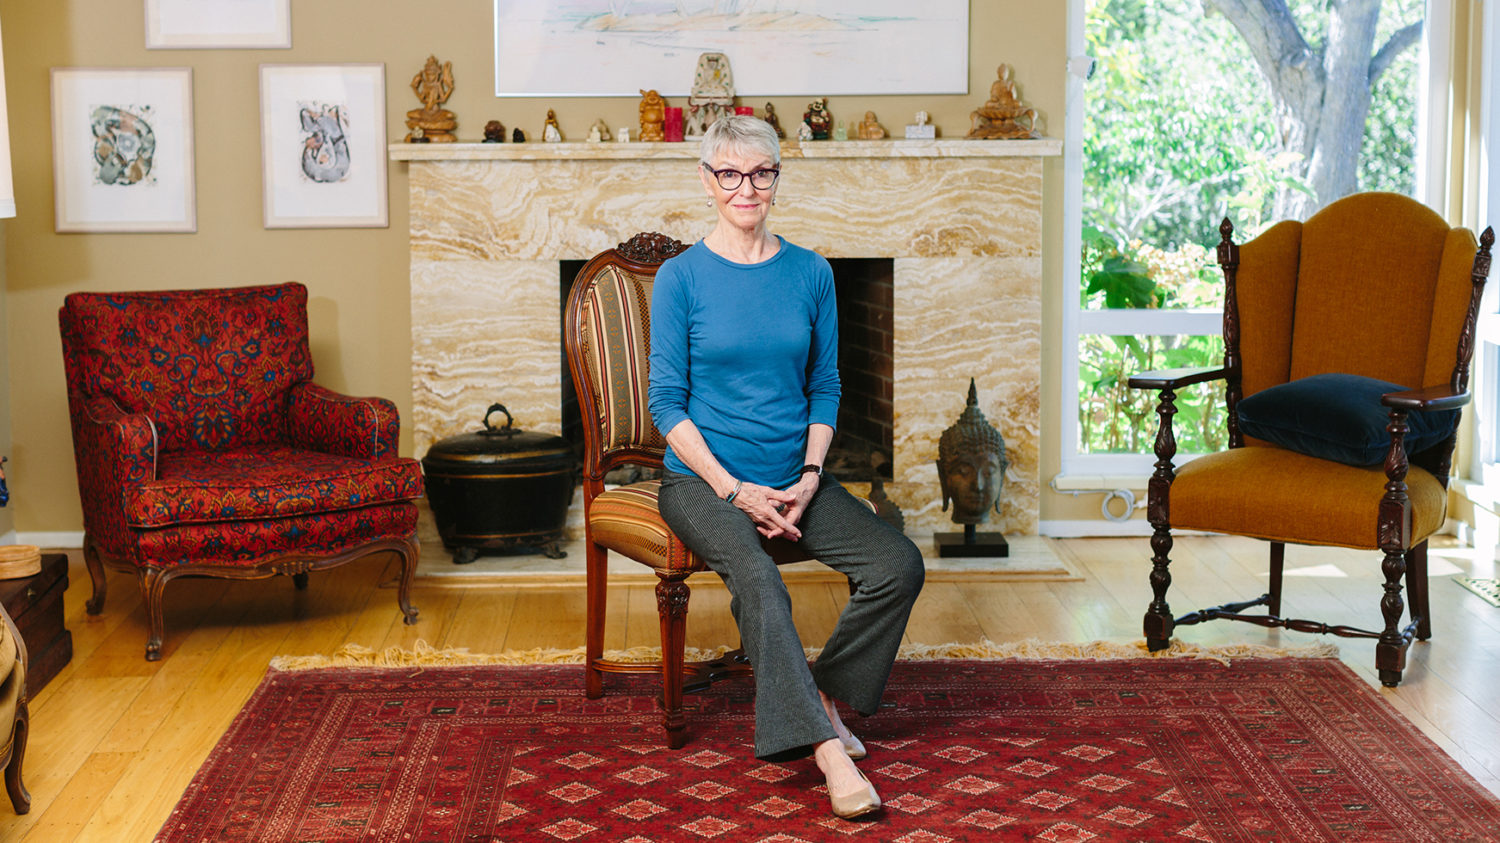 Jean couch 75 perches on the edge of a chair at her home in los altos hills calif she teaches people the art of sitting in chairs without back pain